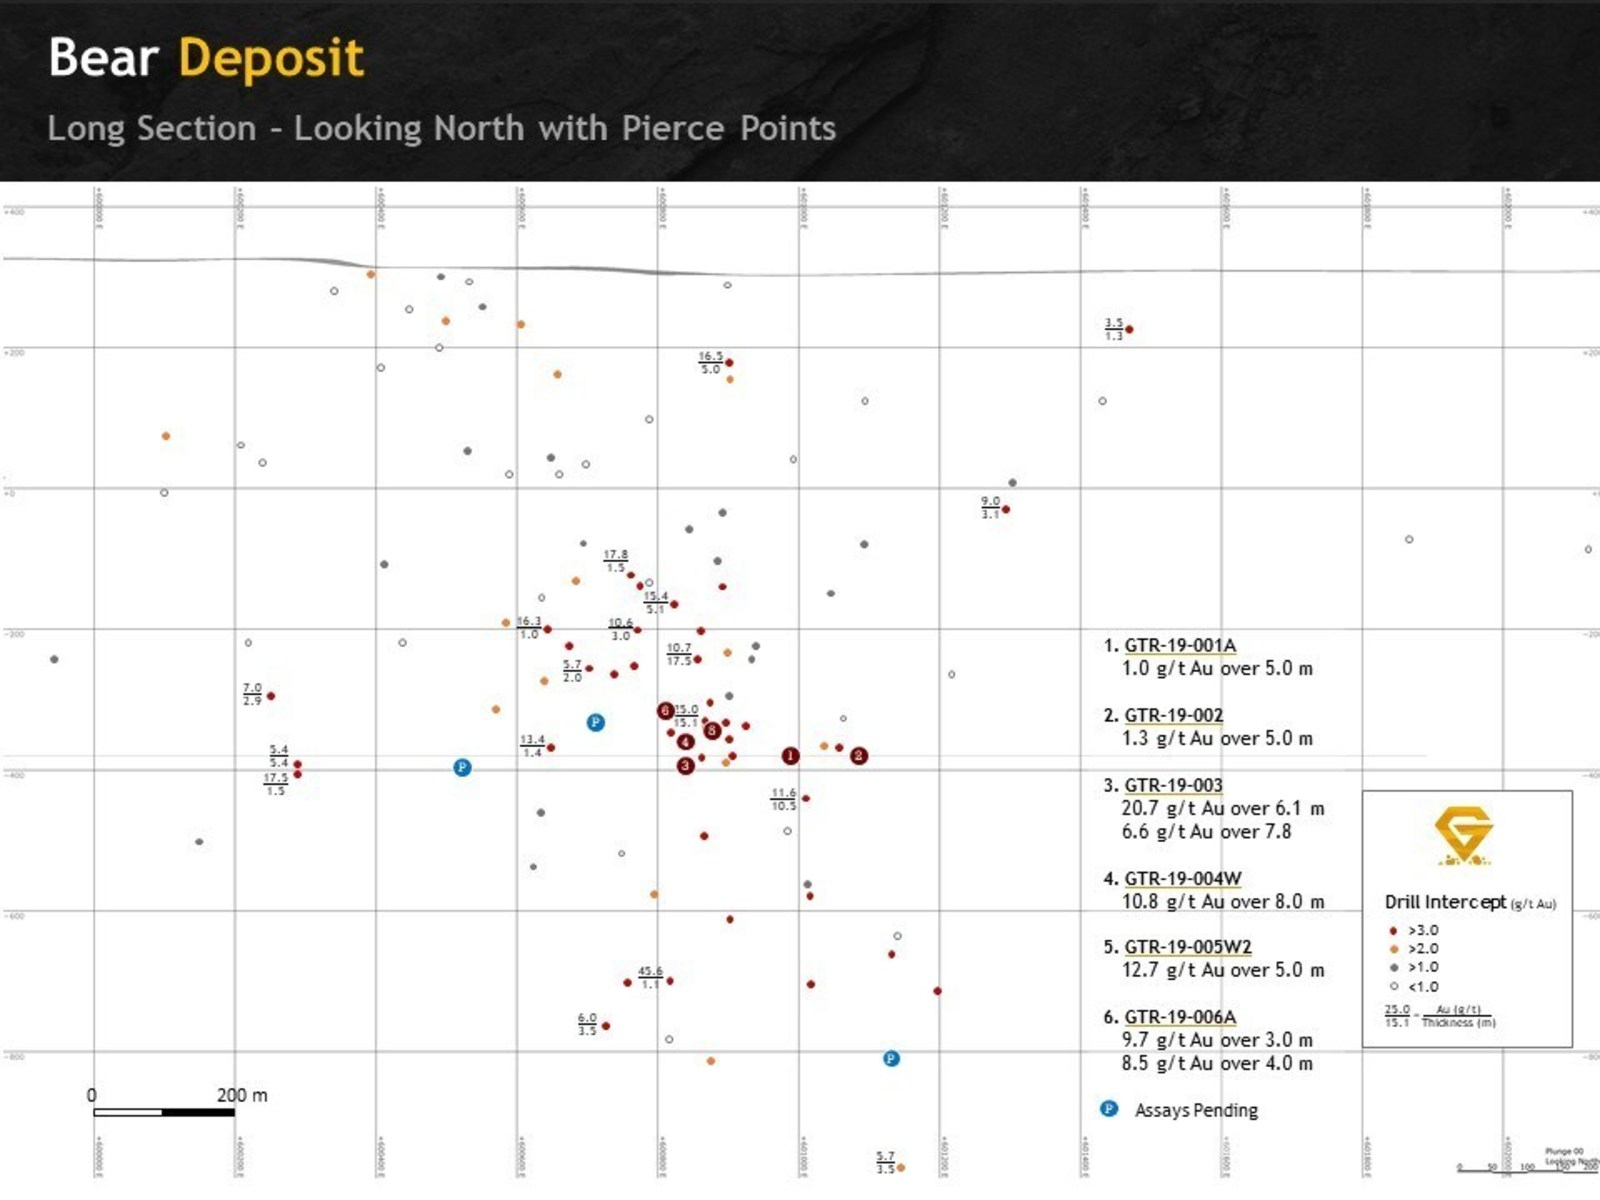 Figure 2. Bear Deposit hybrid long section looking north with drilling composites.